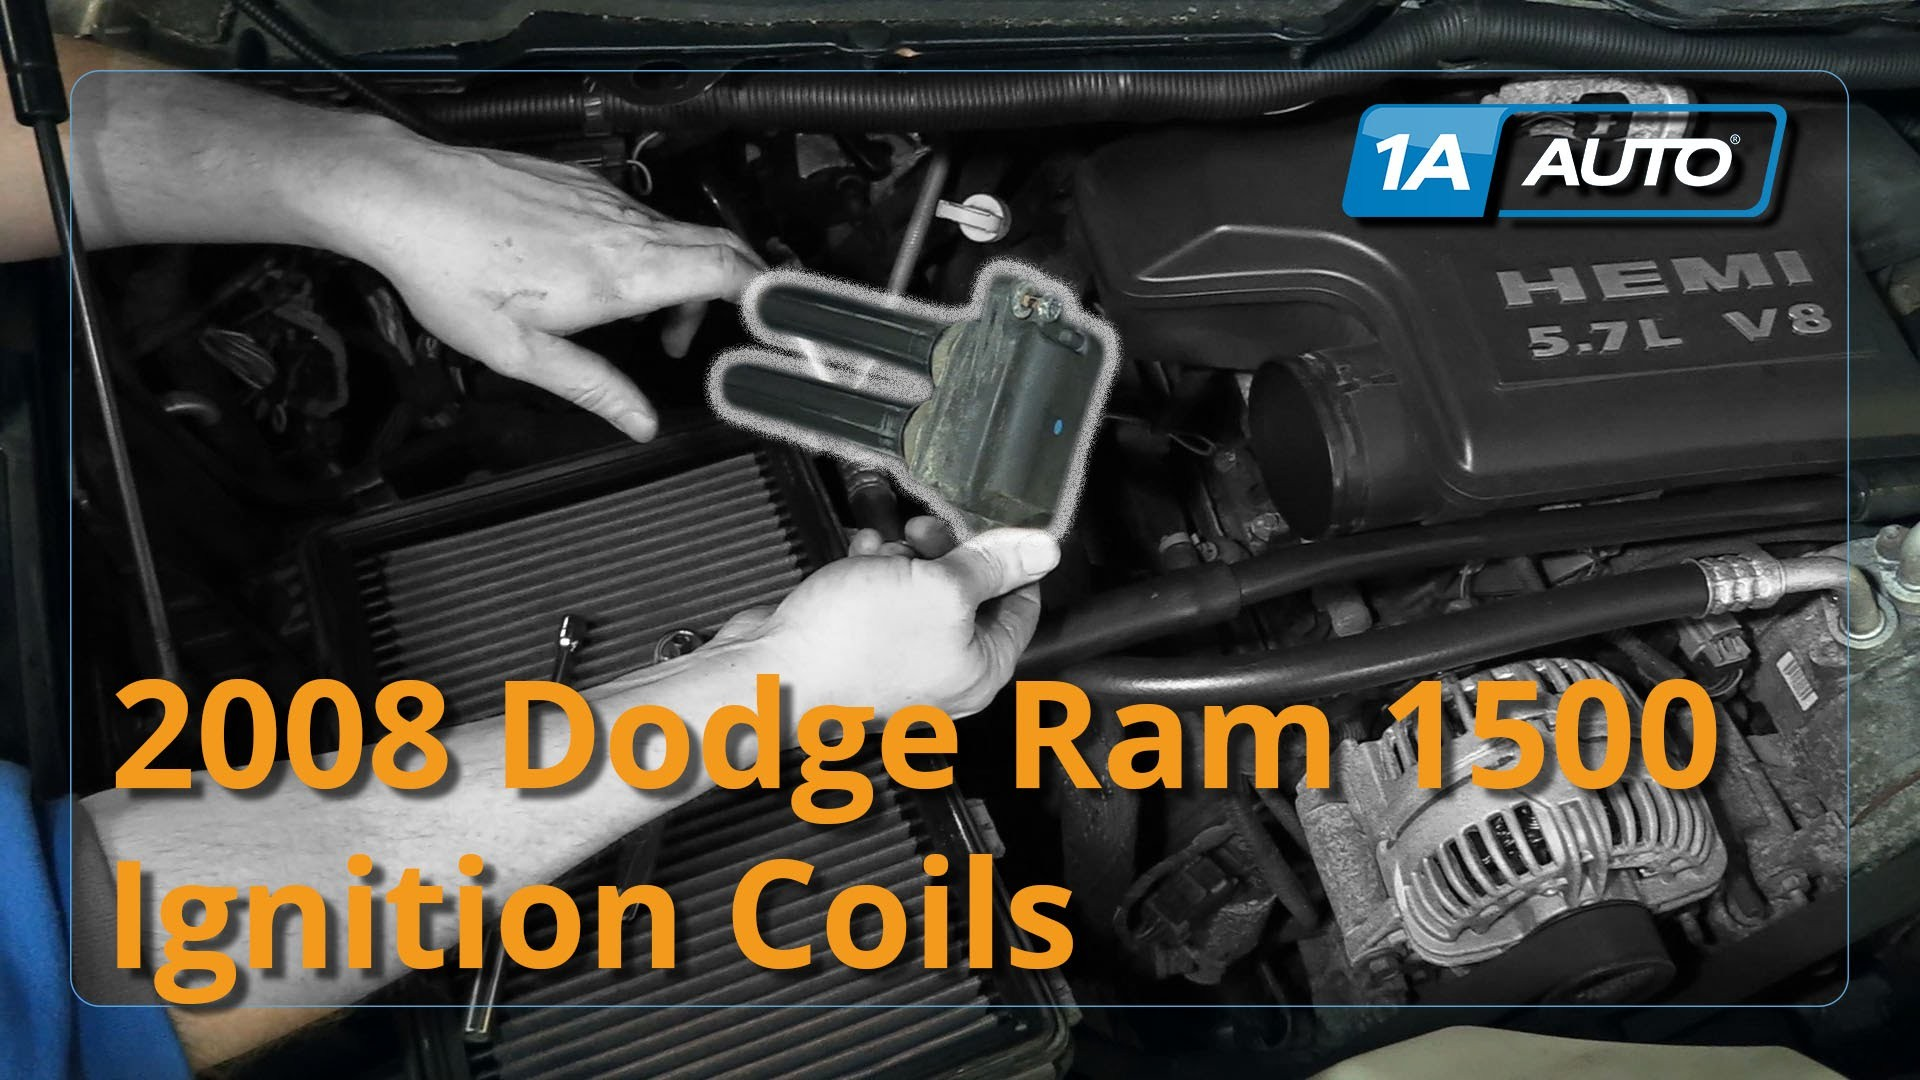 Dodge Ram Parts Diagram How to Install Replace Ignition Coils Dodge Ram 1500 Hemi 5 7l Buy Of Dodge Ram Parts Diagram